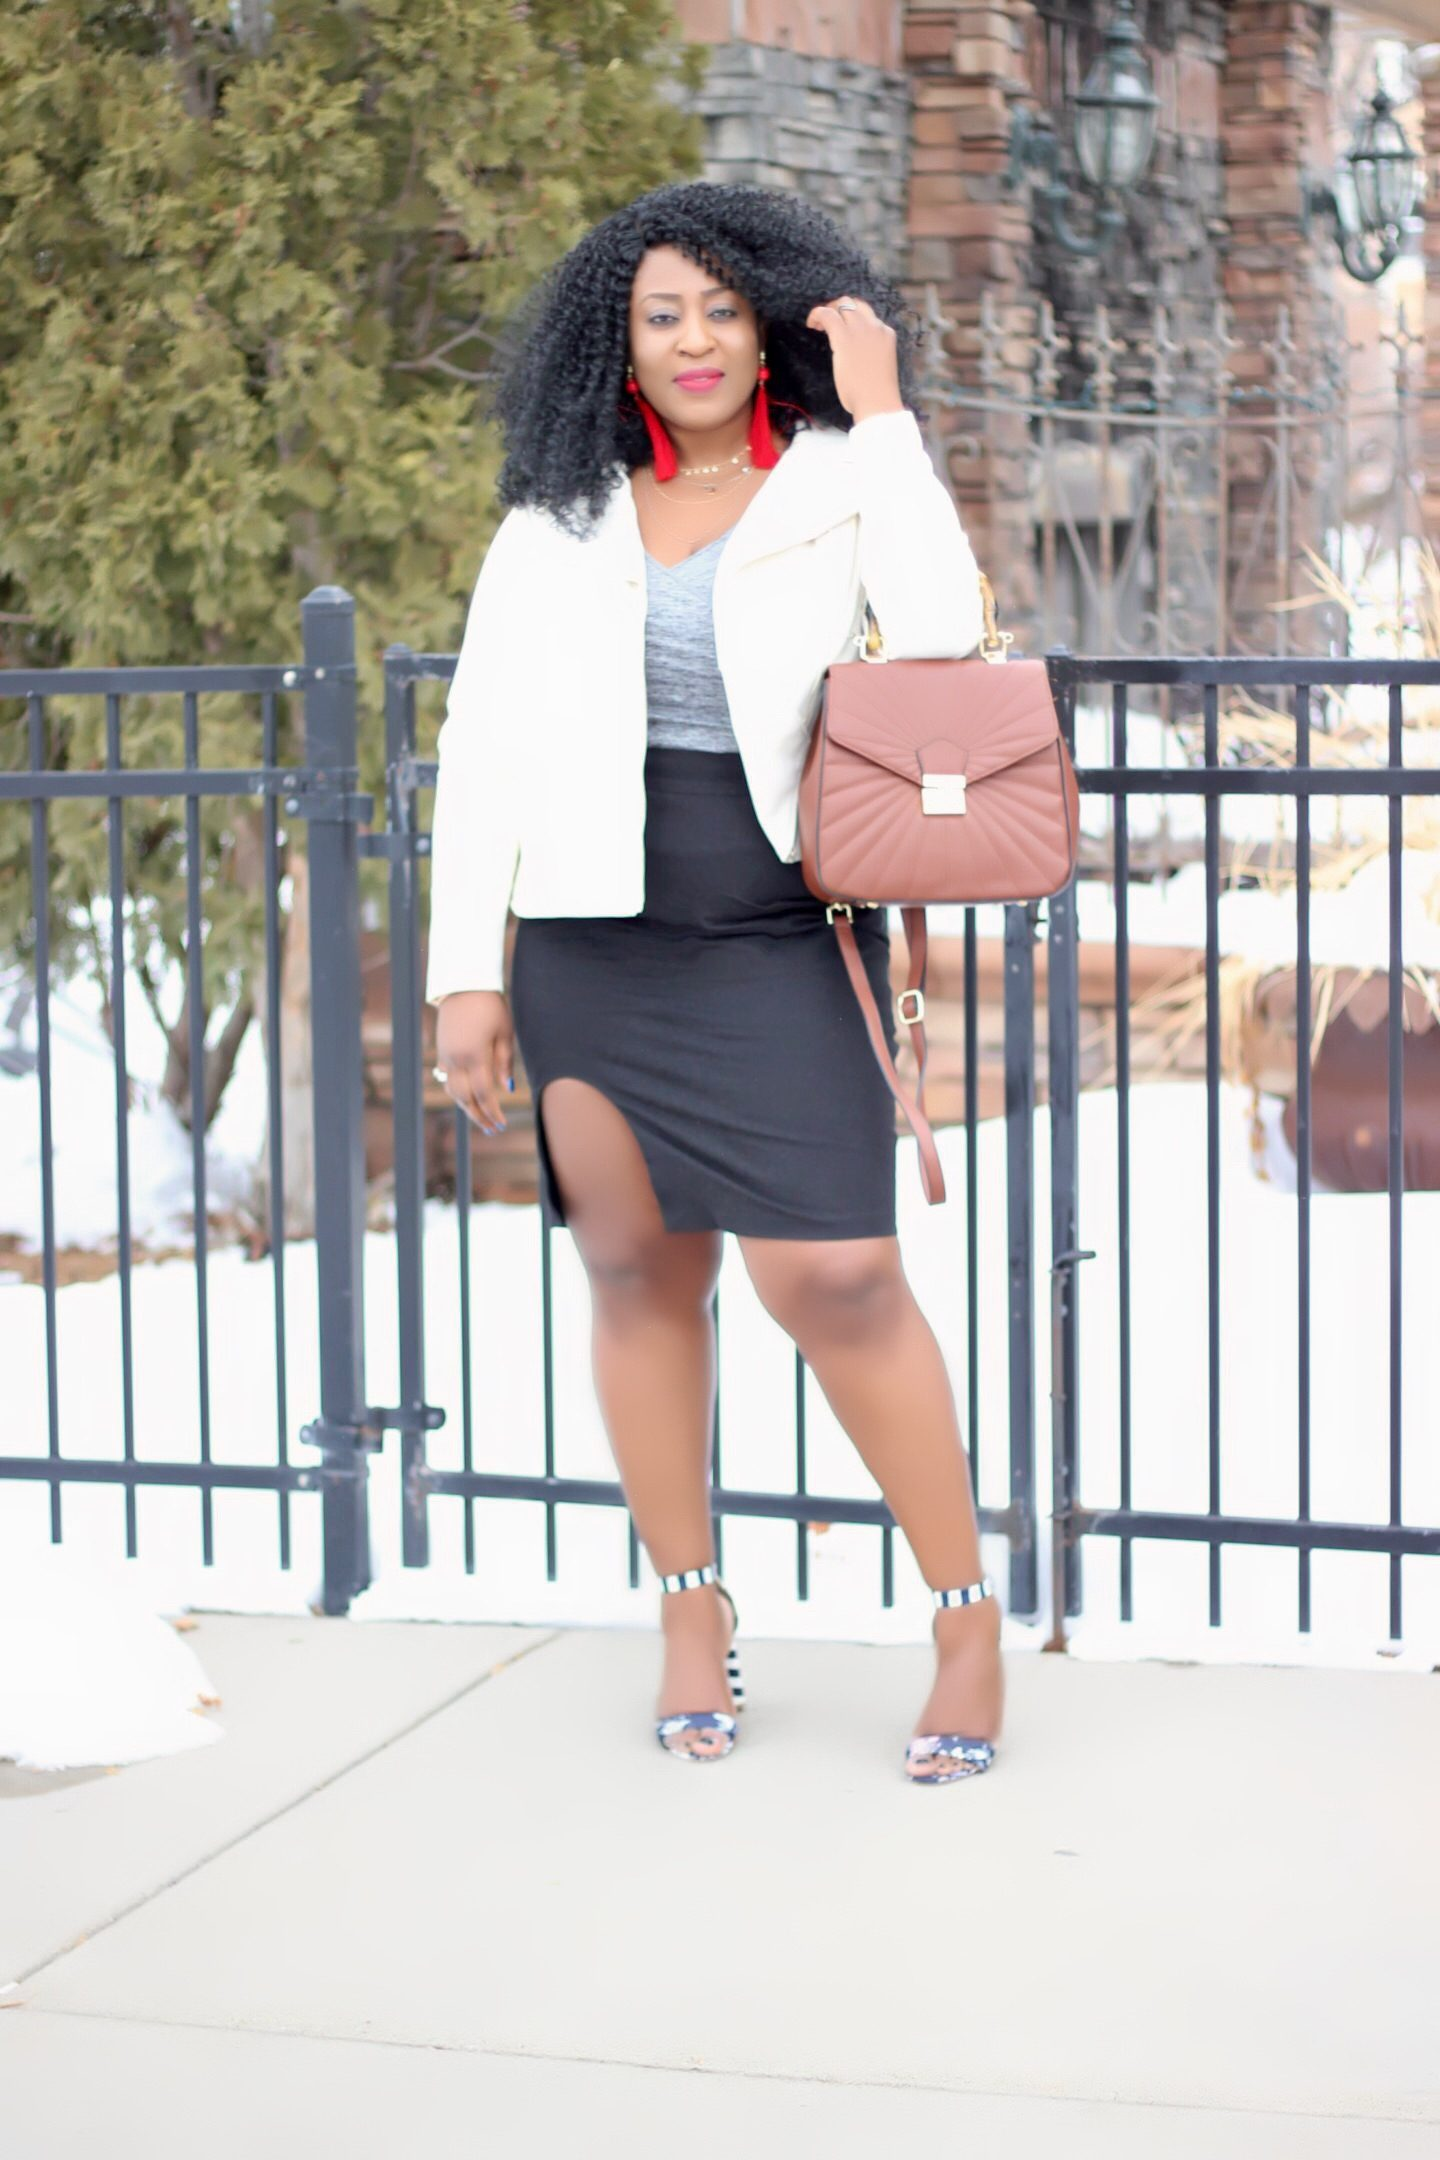 Beautiful-black-women-in-chic-outfit